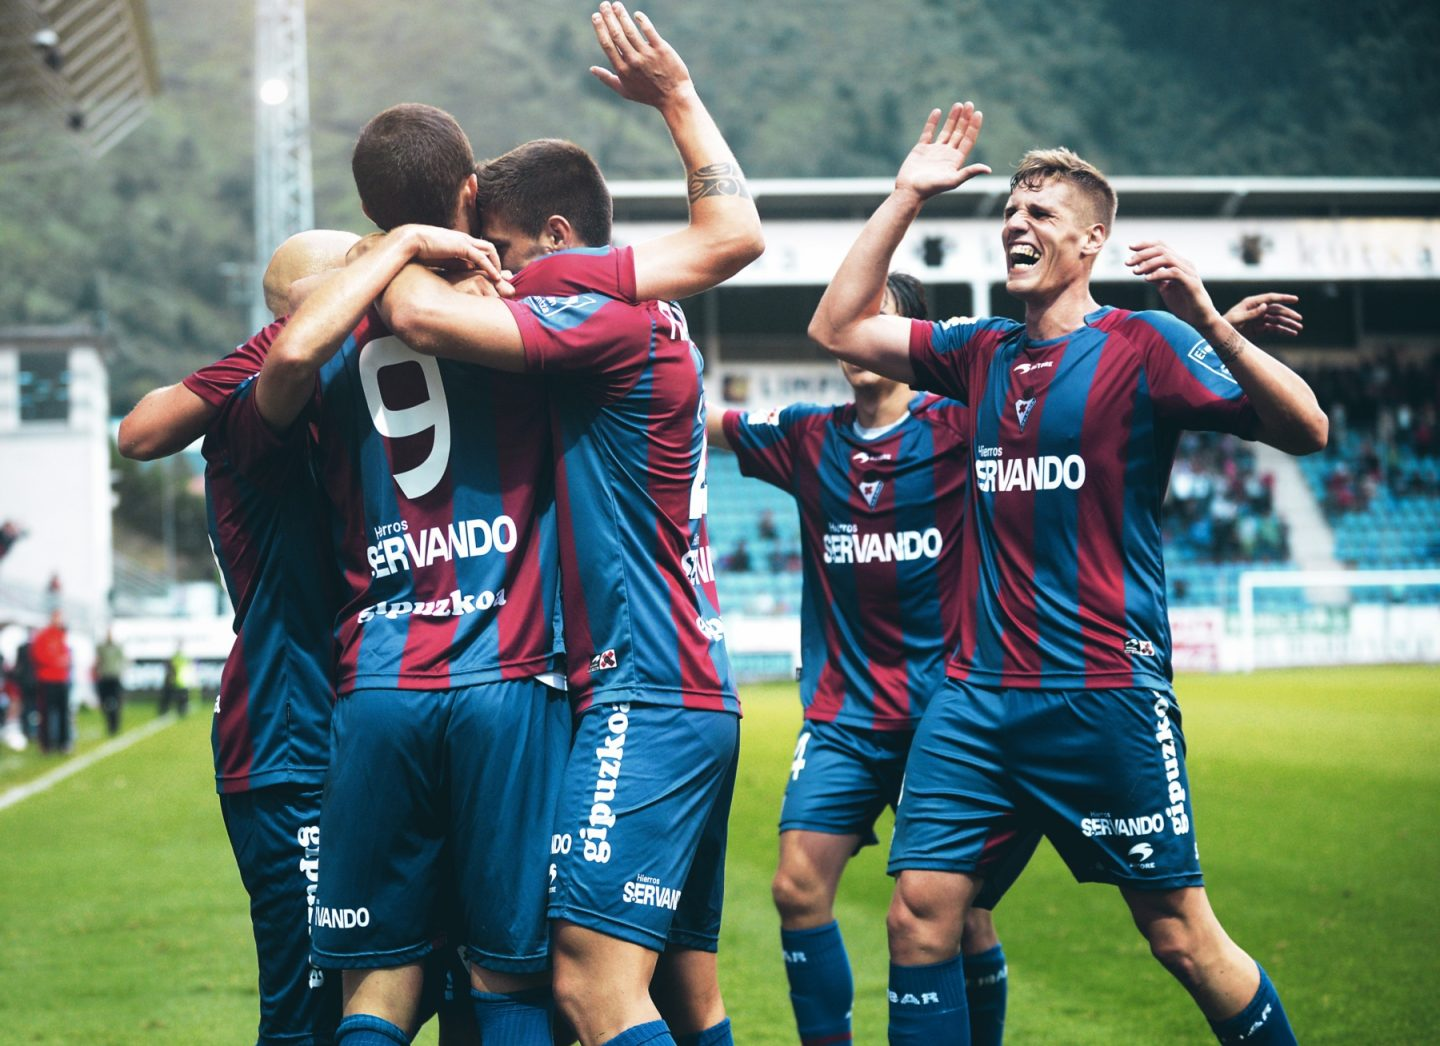 Clubkultur: SD Eibar, redefining the way we talk about 'small teams'